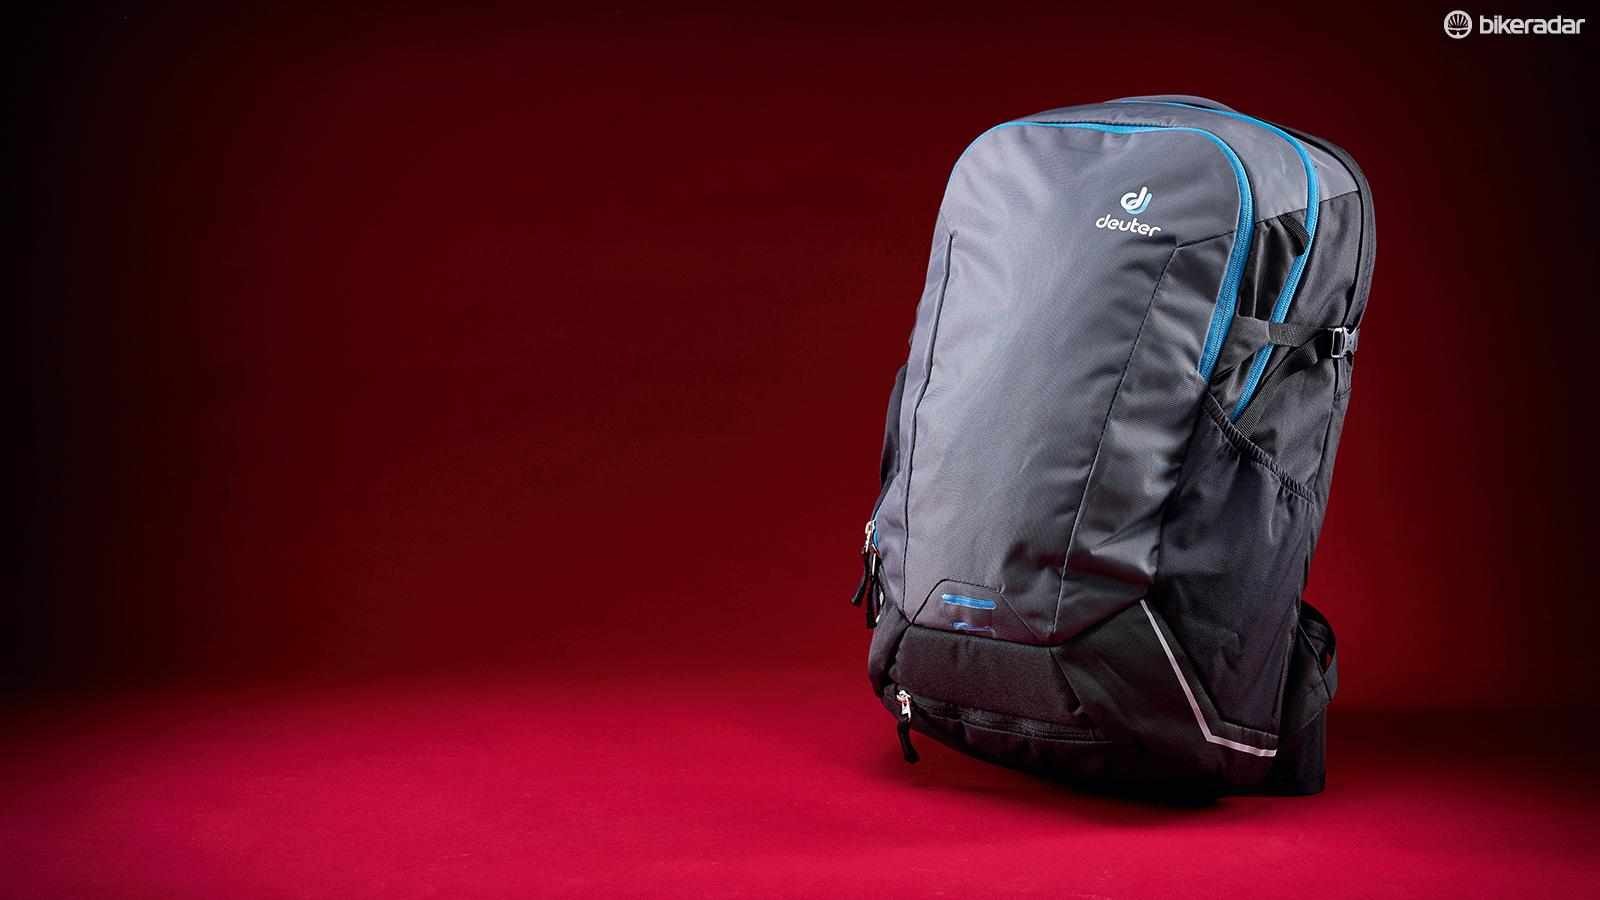 This has pretty much all you need in a large-capacity, cycling-specific backpack